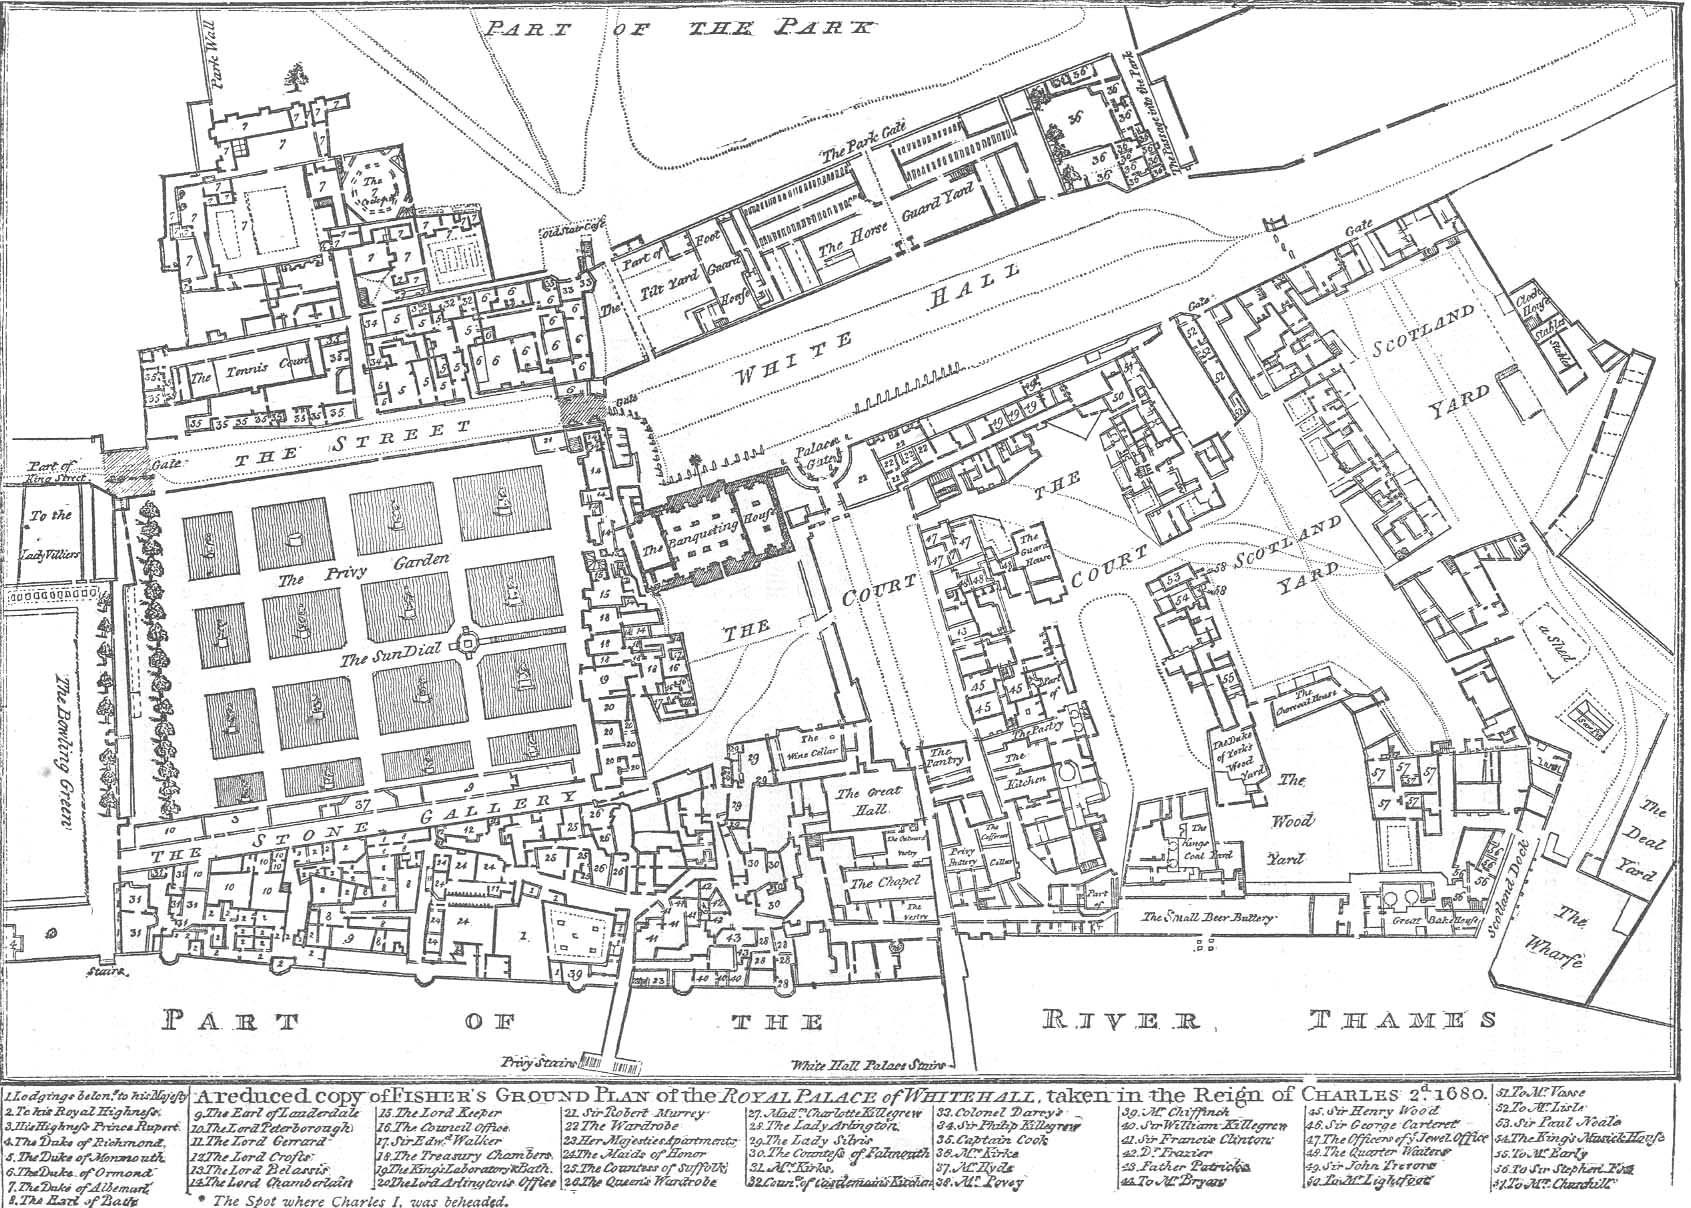 http://upload.wikimedia.org/wikipedia/commons/e/e7/Whitehall1680.jpg